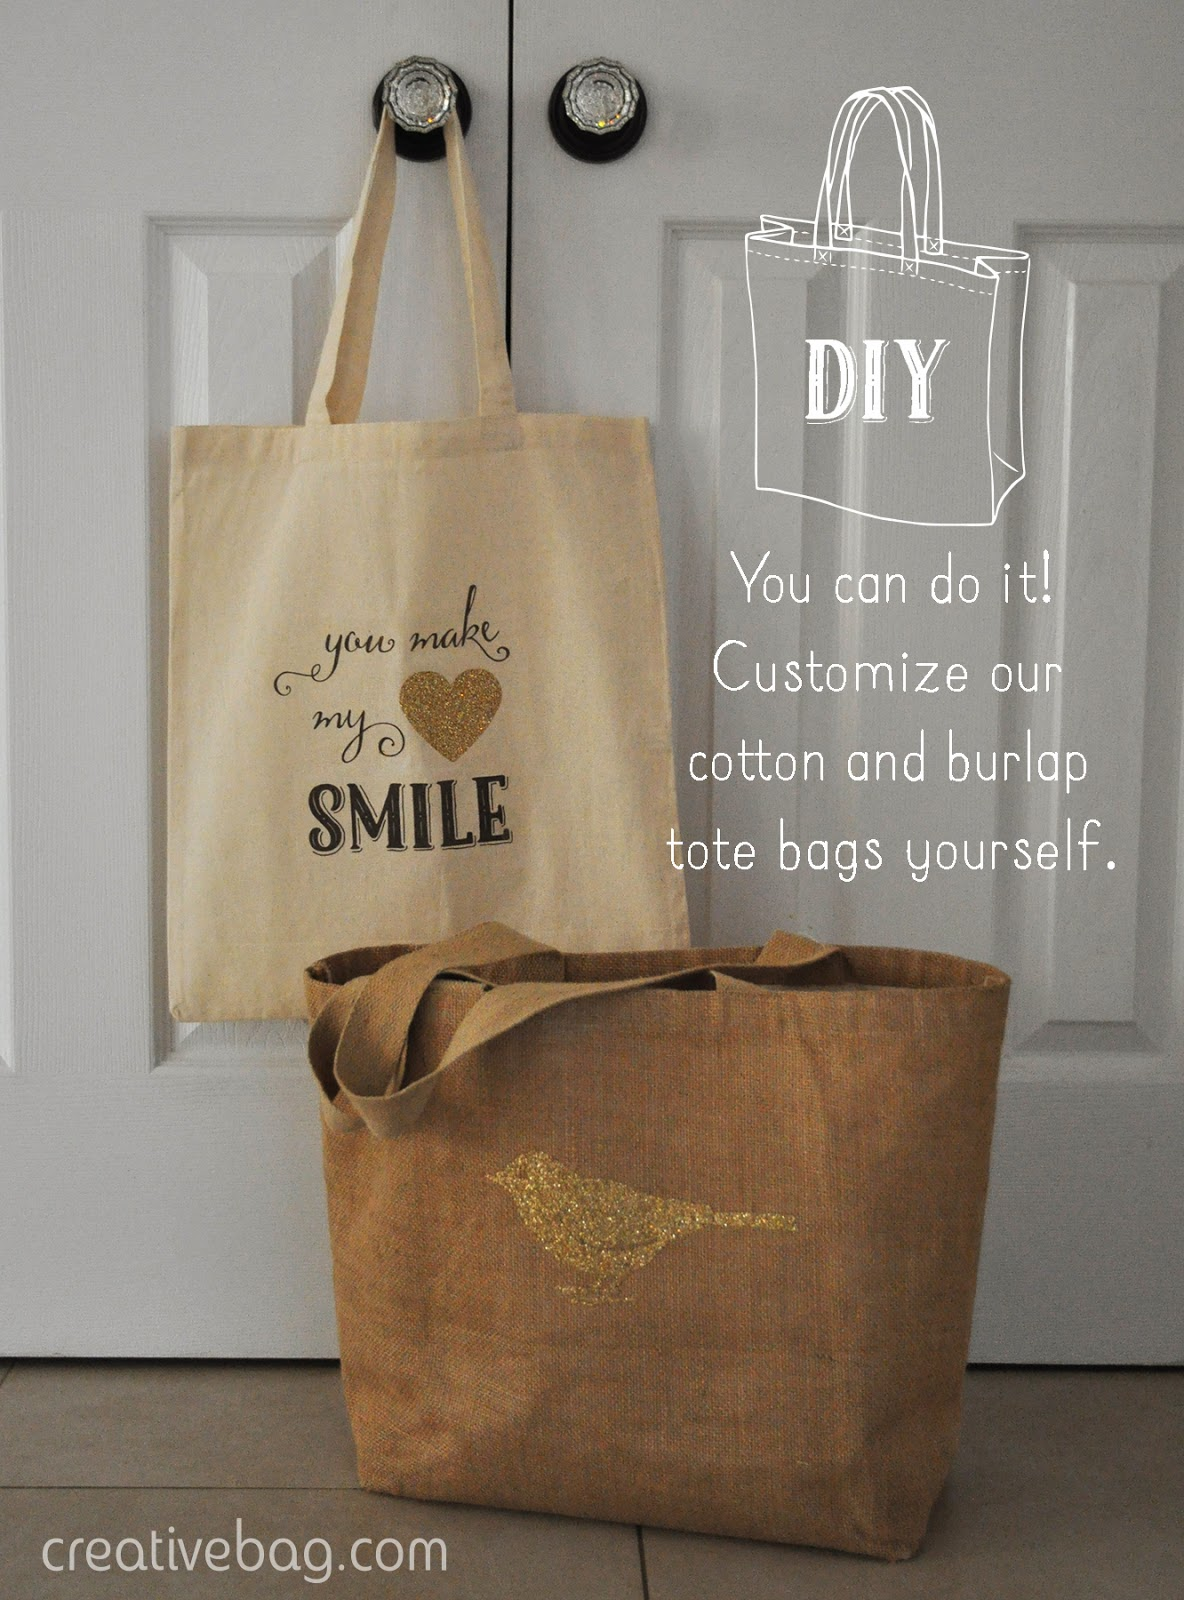 you can do it yourself - customize tote bags | Creative Bag